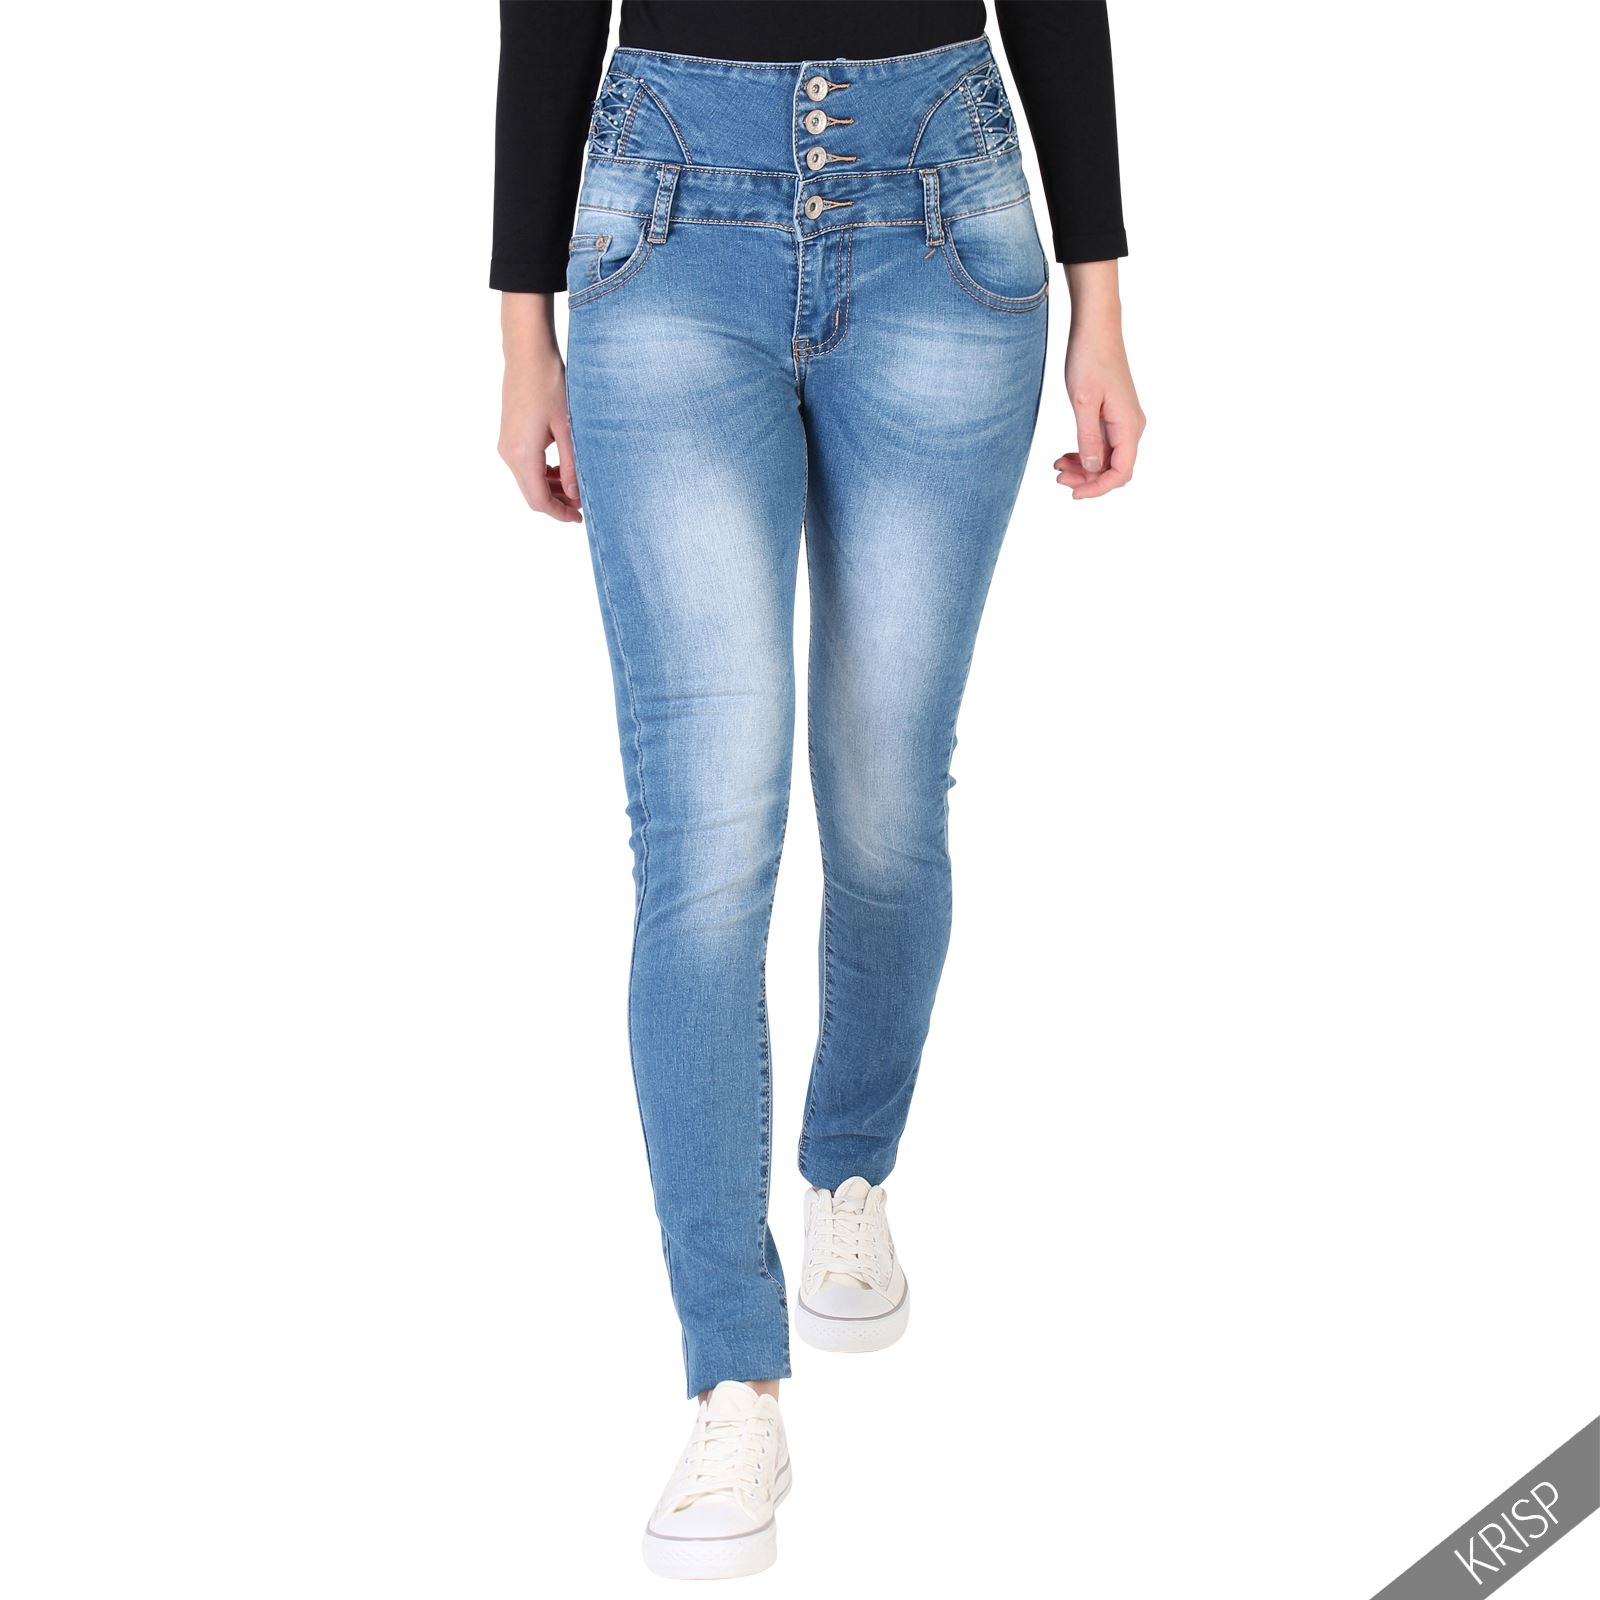 Sep 28, · How to Bleach Jeans. Three Parts: Preparing to Bleach Lightening Your Jeans Adding Final Touches Community Q&A If you have a dark pair of jeans that you want to lighten, bleaching can do the trick. Bleaching jeans can also give your pants a worn, softer downiloadojg.gq: K.